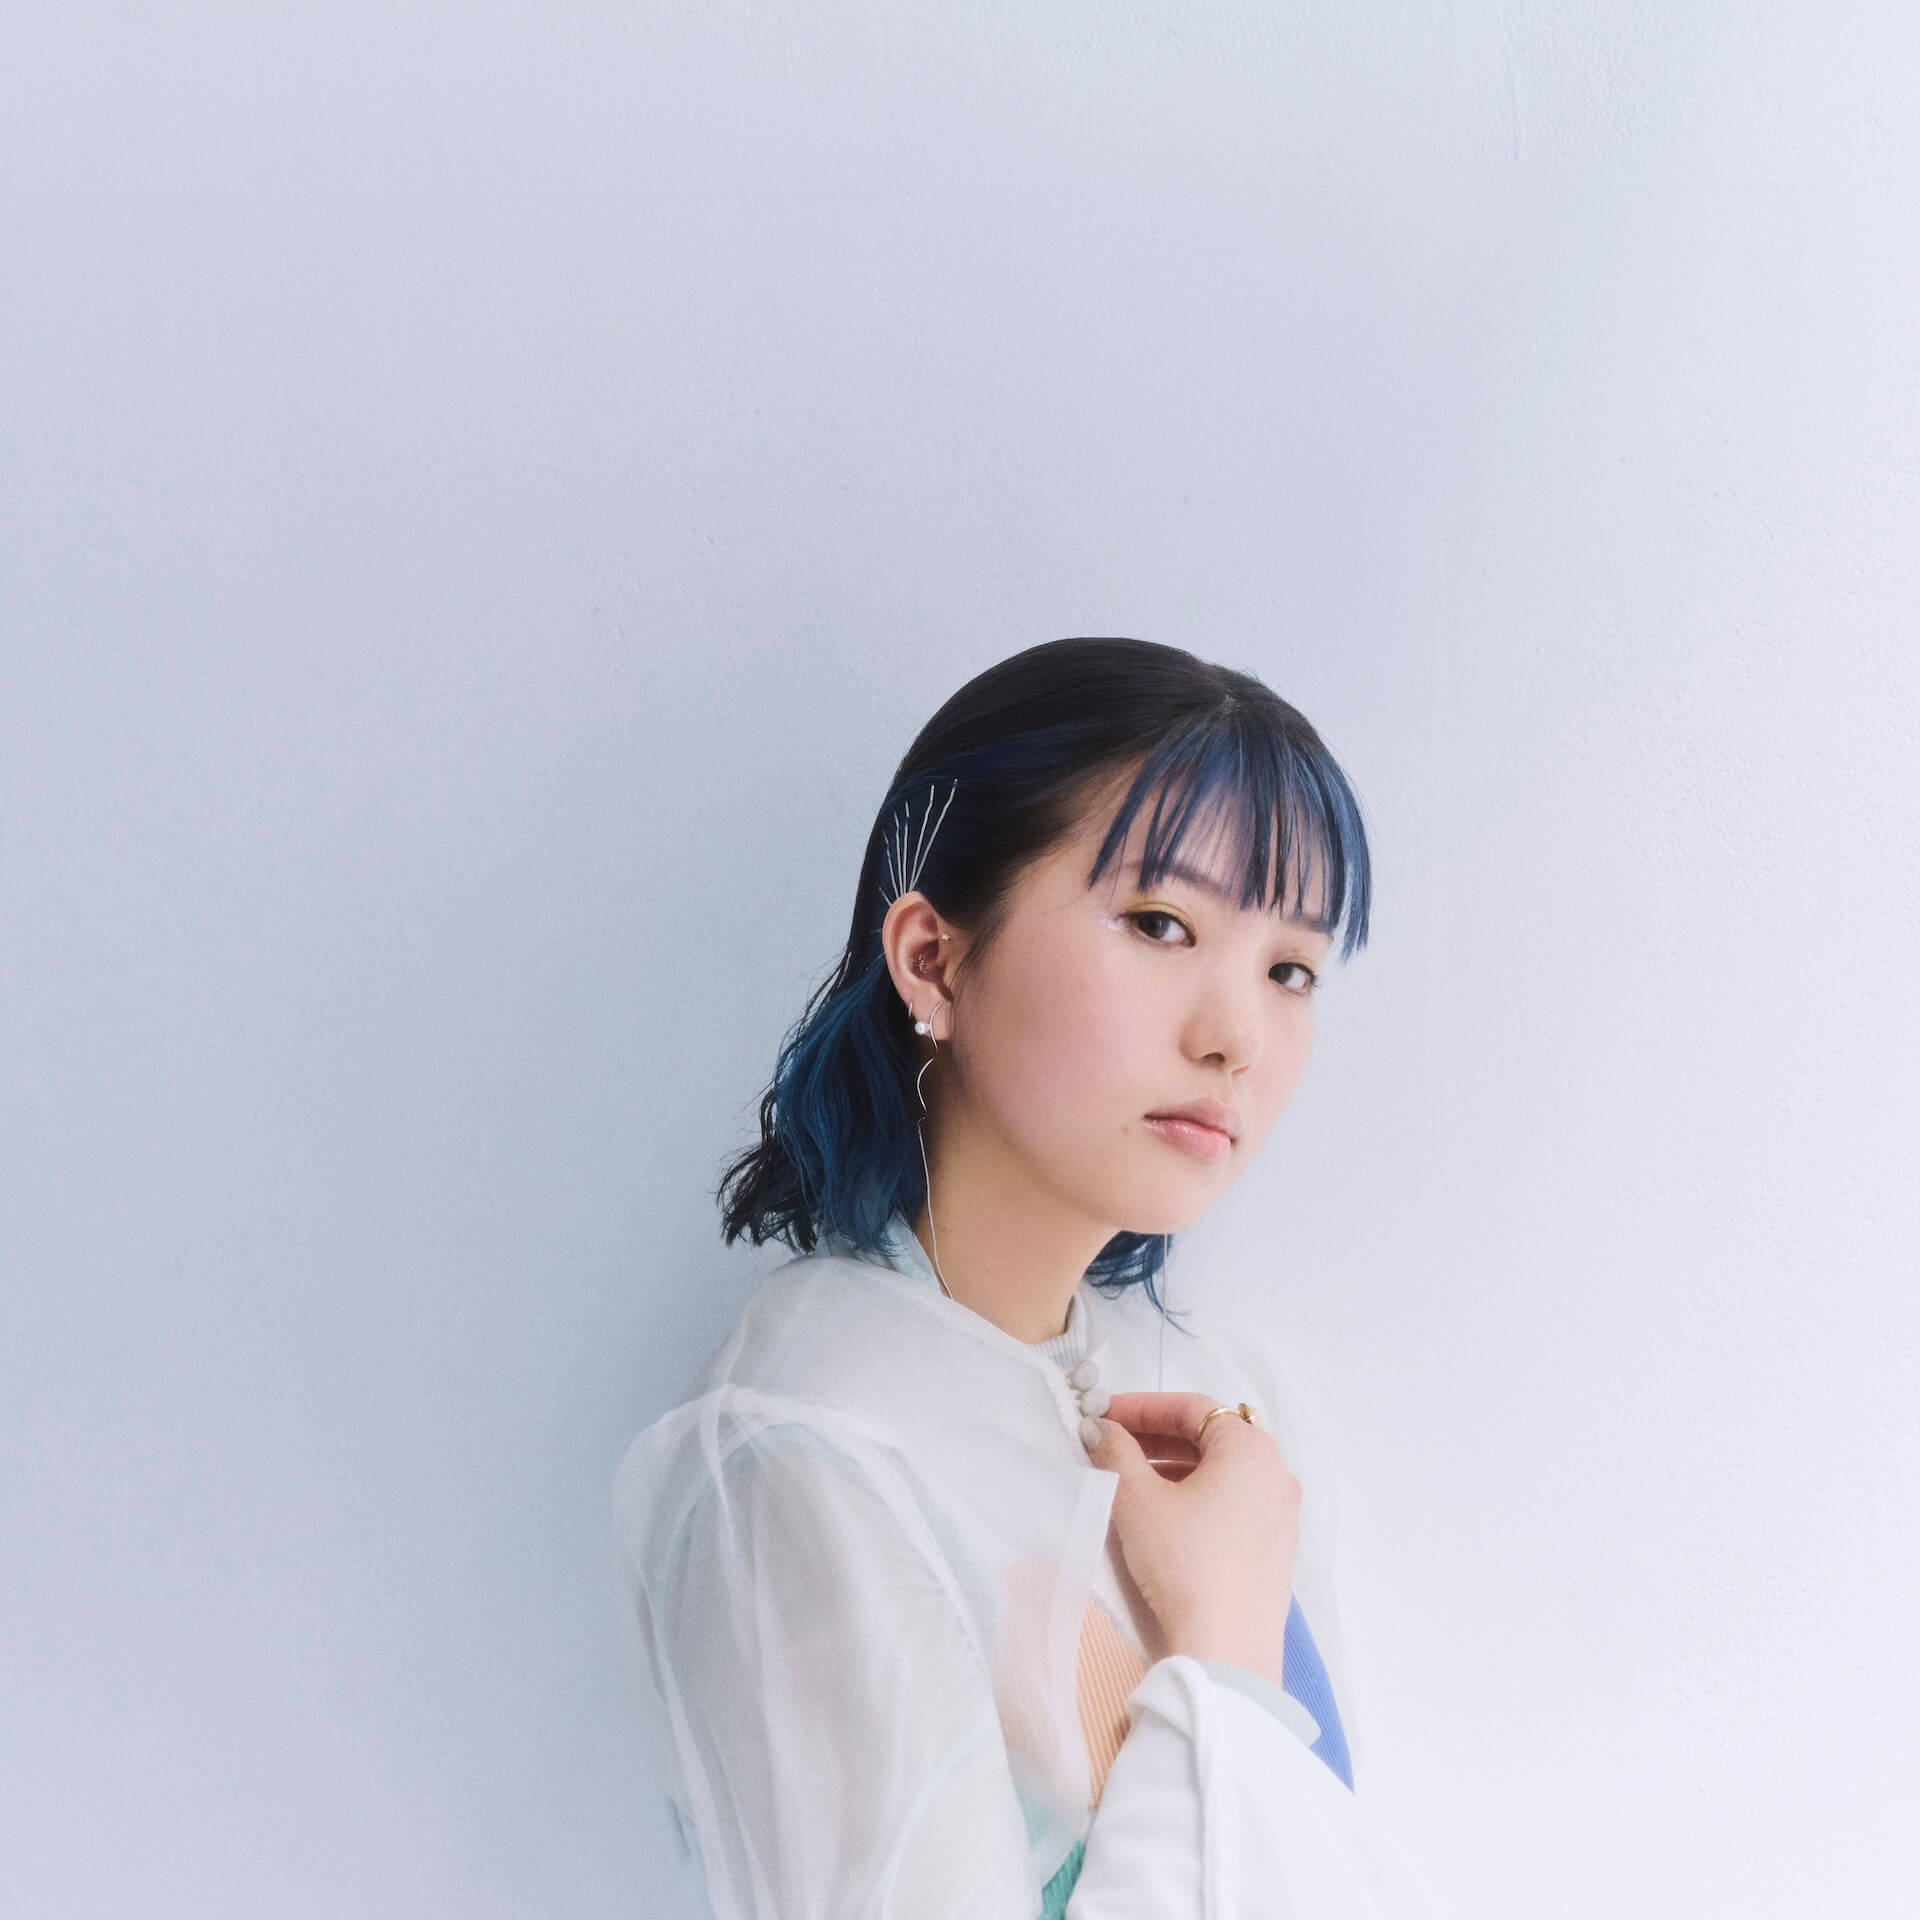 Spincoaster主催のライブイベント<SPIN.DISCOVERY>が開催決定!田我流、釈迦坊主、MonyHorse、DYGLなどが参加 music210623_spindiscovery21